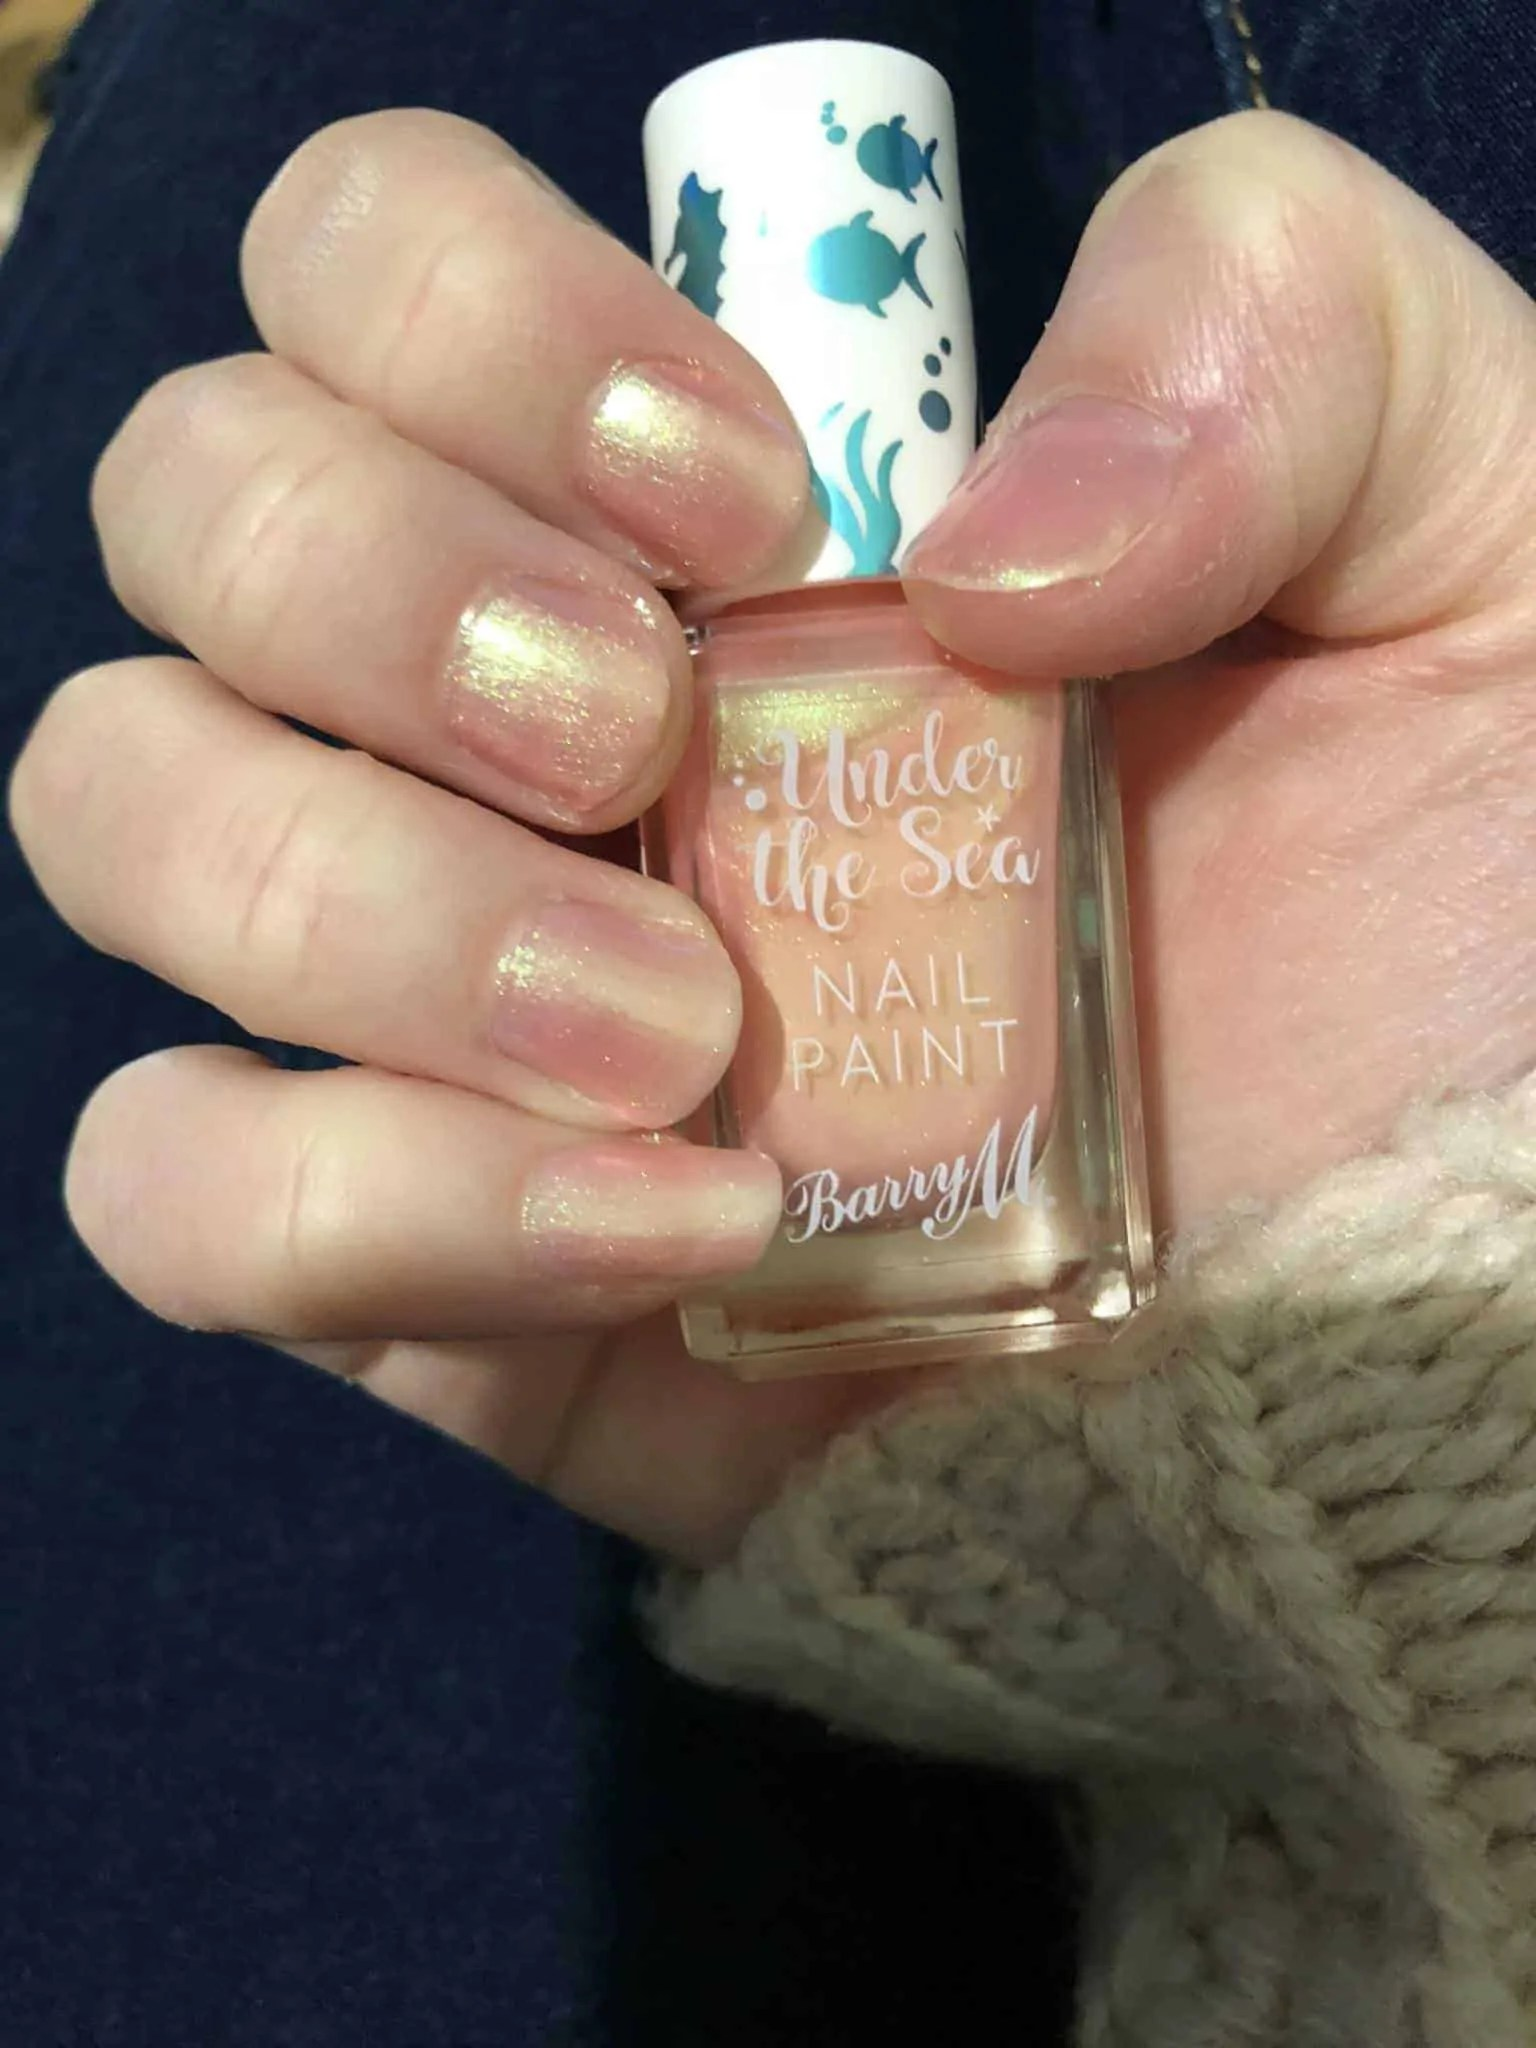 barry m under the sea nail varnish pinktail wearing